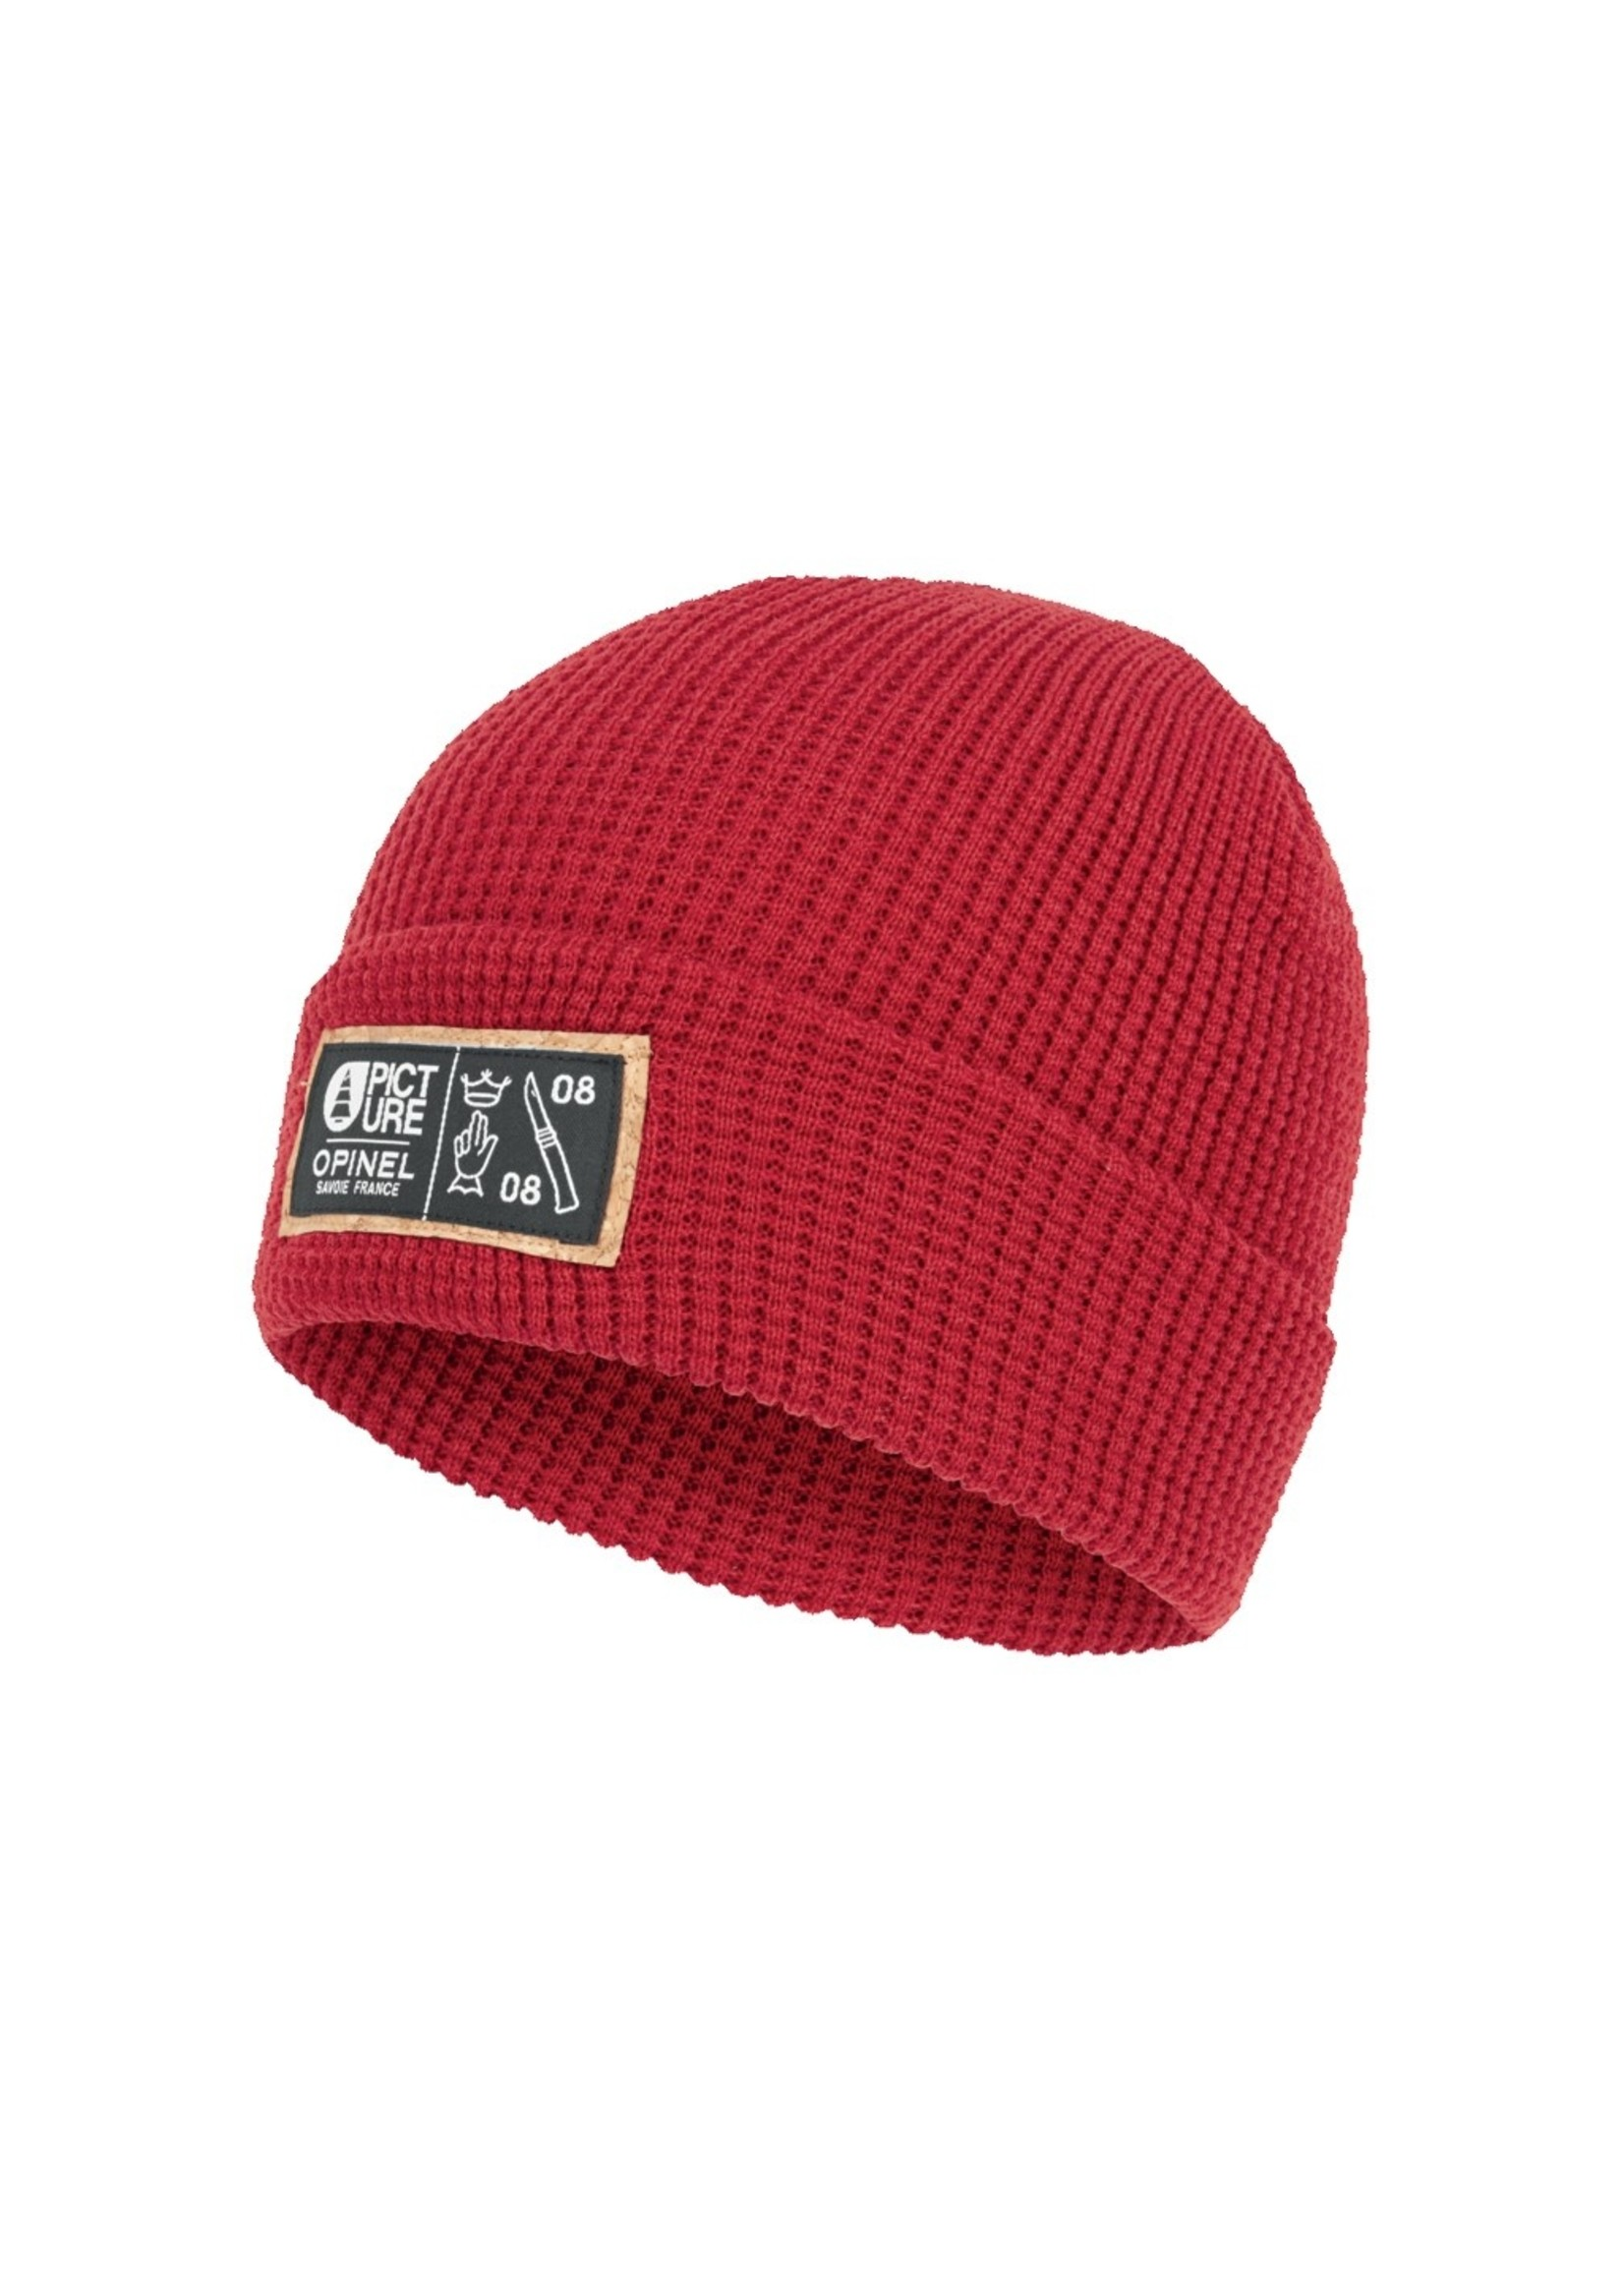 Picture Organic Clothing YORK OPINEL BEANIE